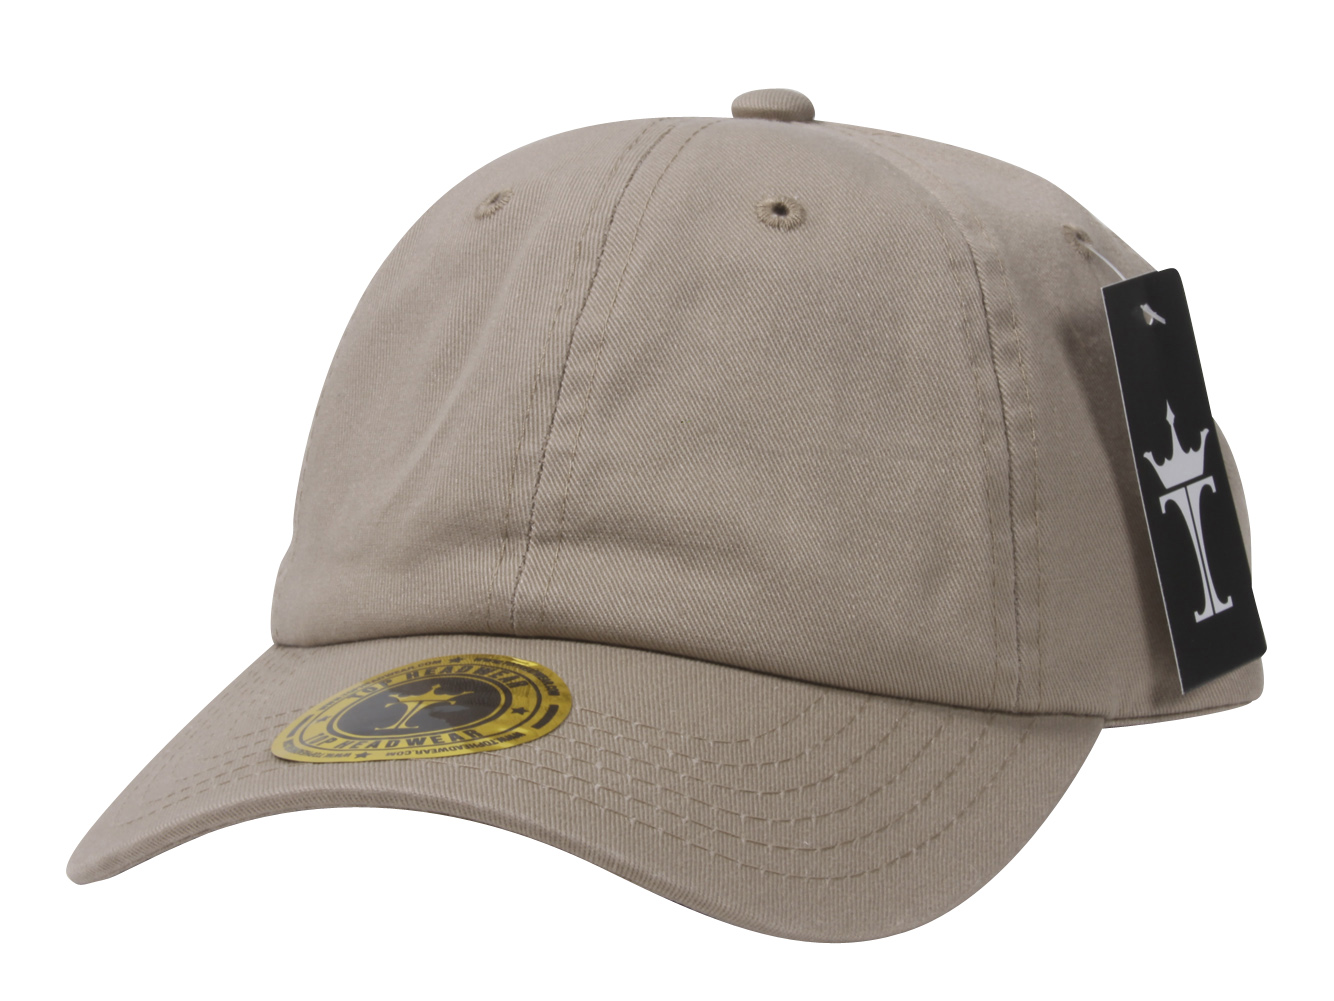 Low-Profile-Dyed-Cotton-Twill-Cap thumbnail 9